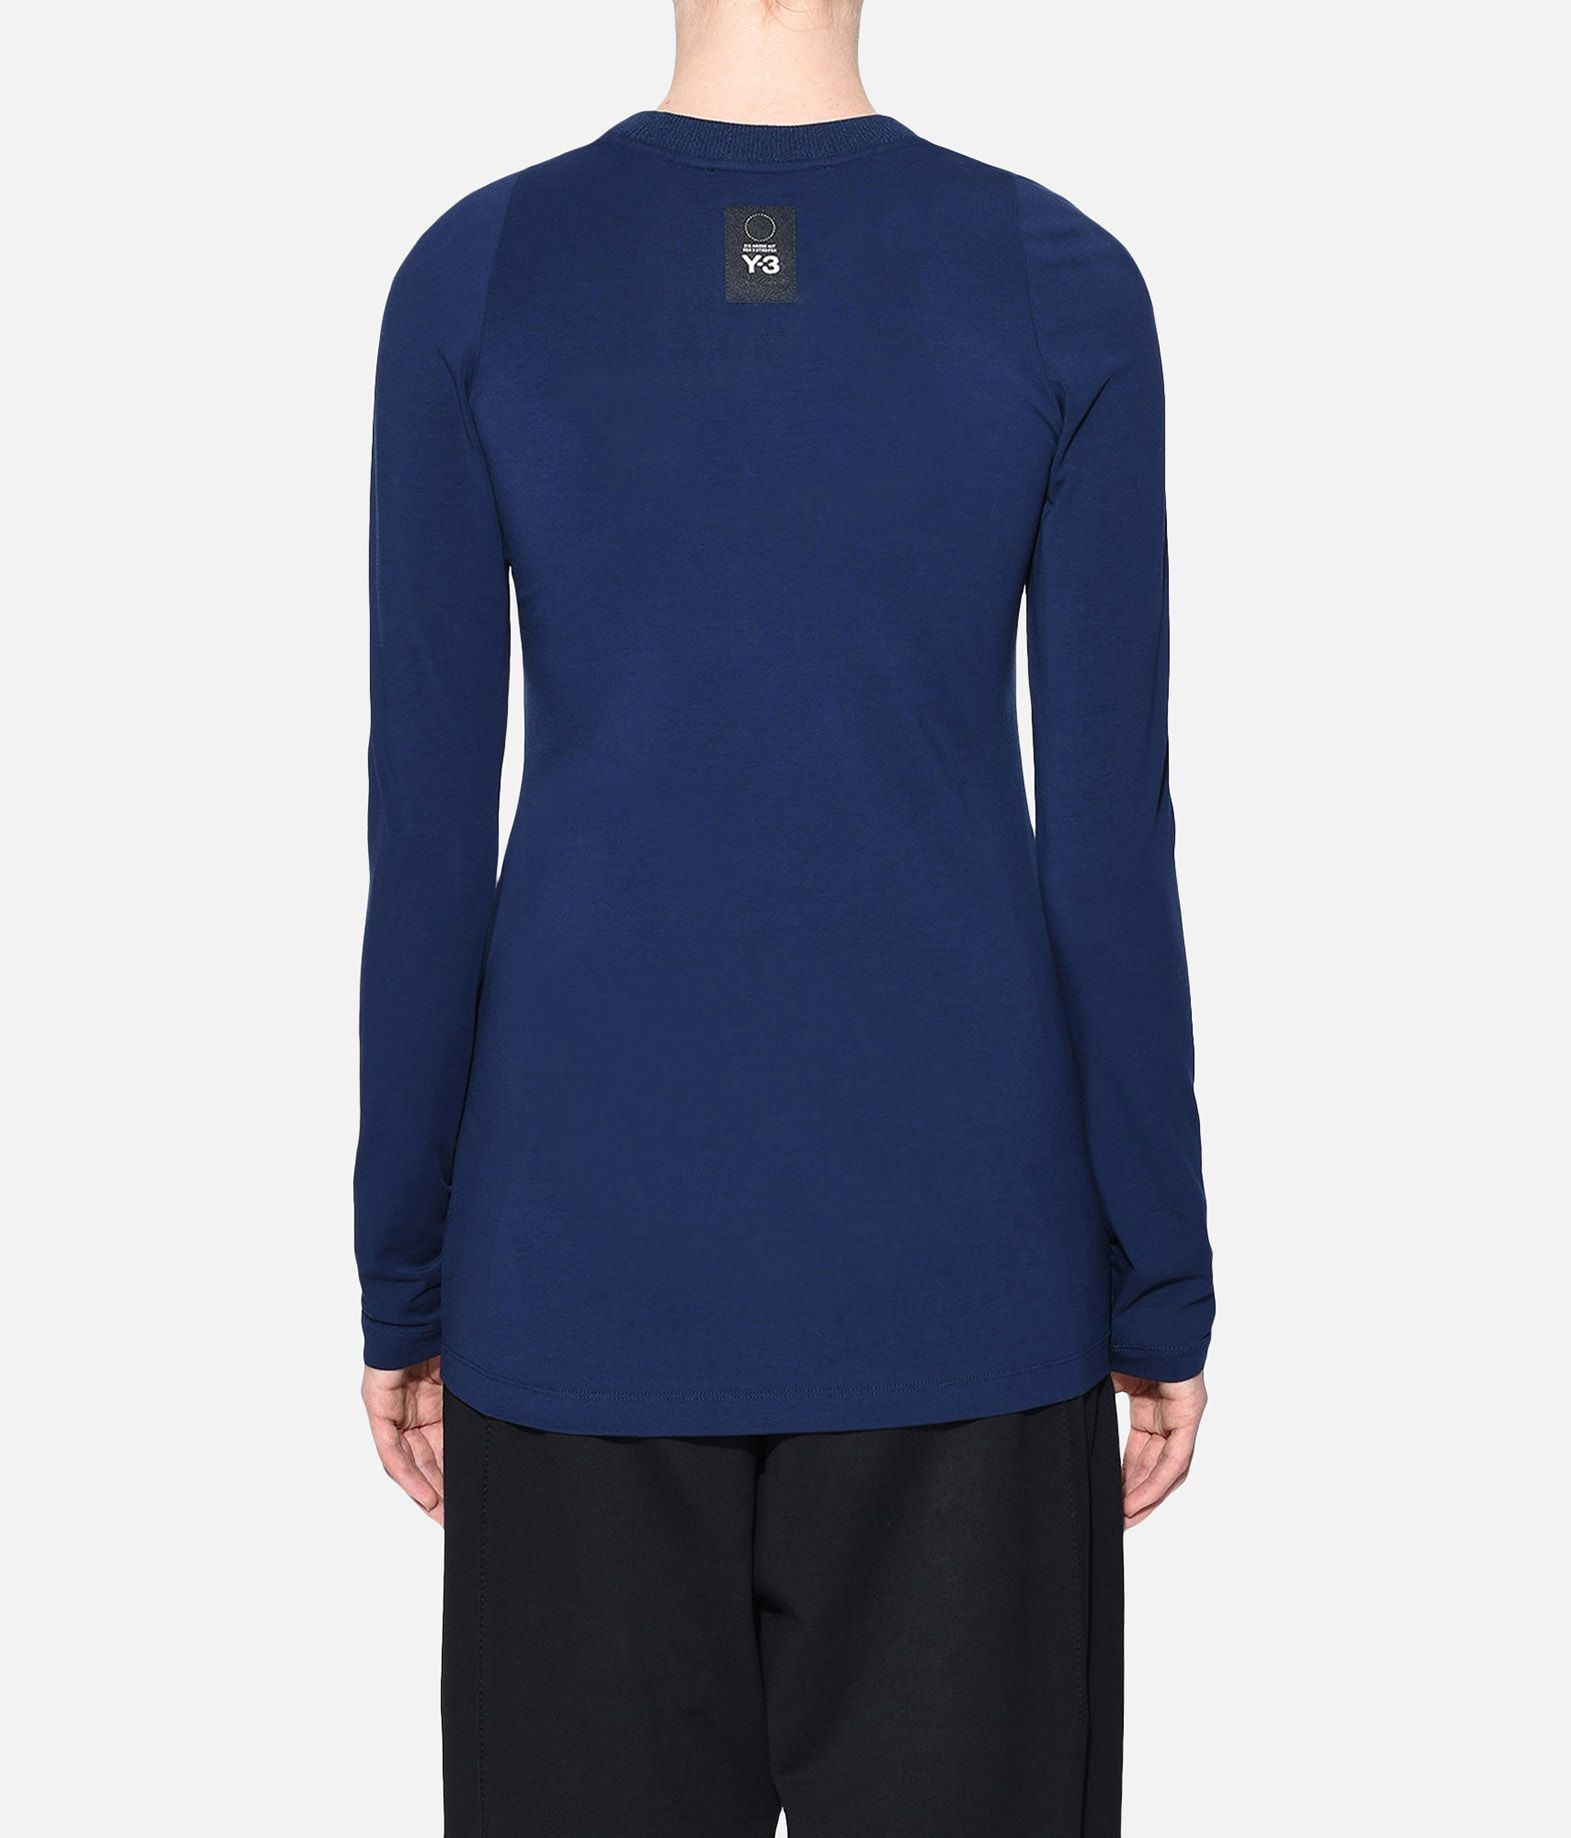 Y-3 Y-3 Prime Tee Long sleeve t-shirt Woman d